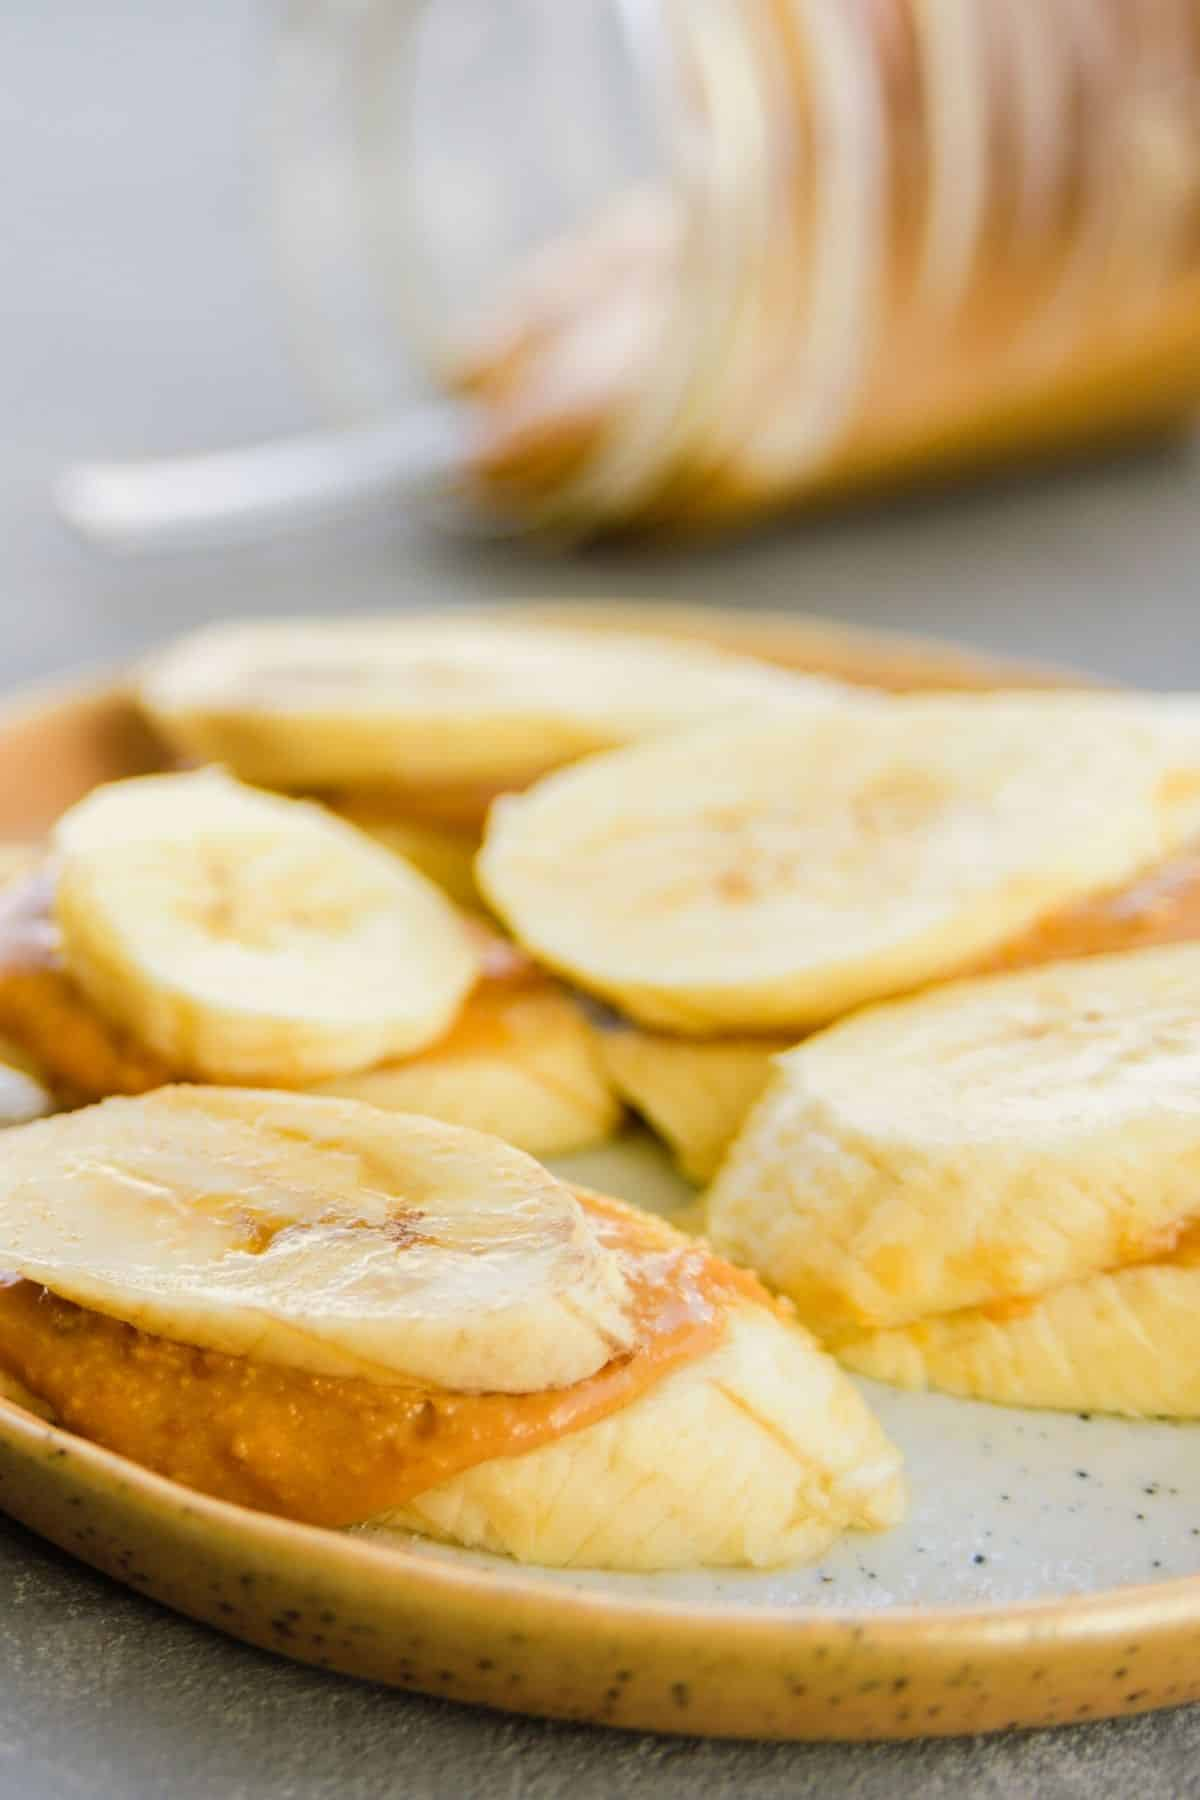 sliced banana with peanut butter